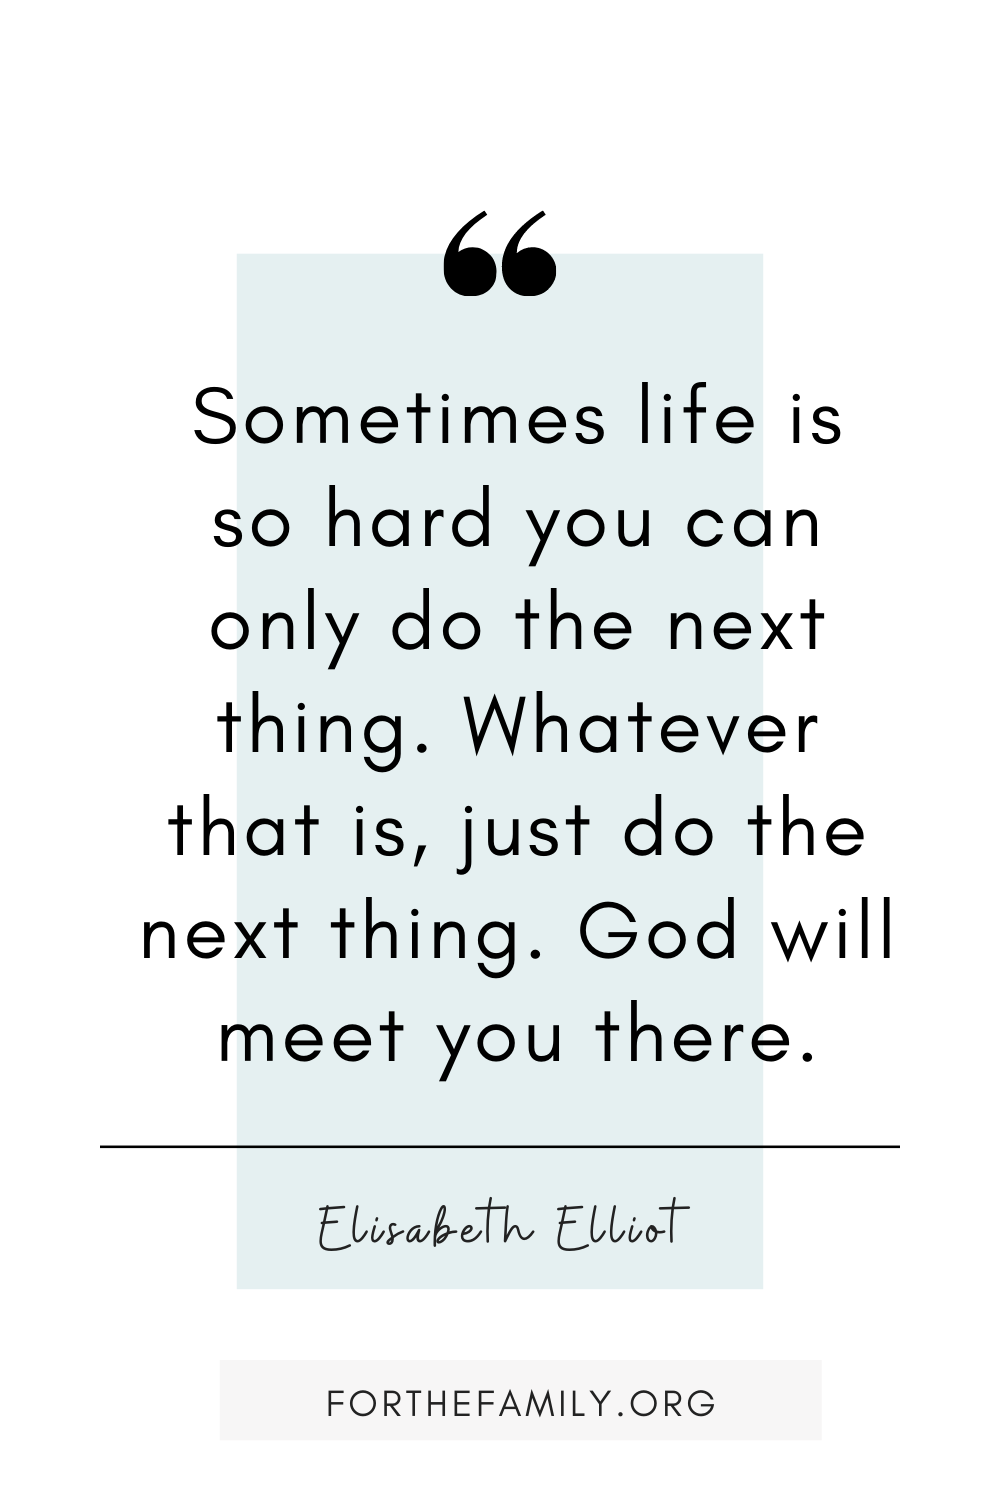 """Sometimes life is so hard you can only do the next thing. Whatever that is, just do the next thing. God will meet you there."" - Elisabeth Elliot"